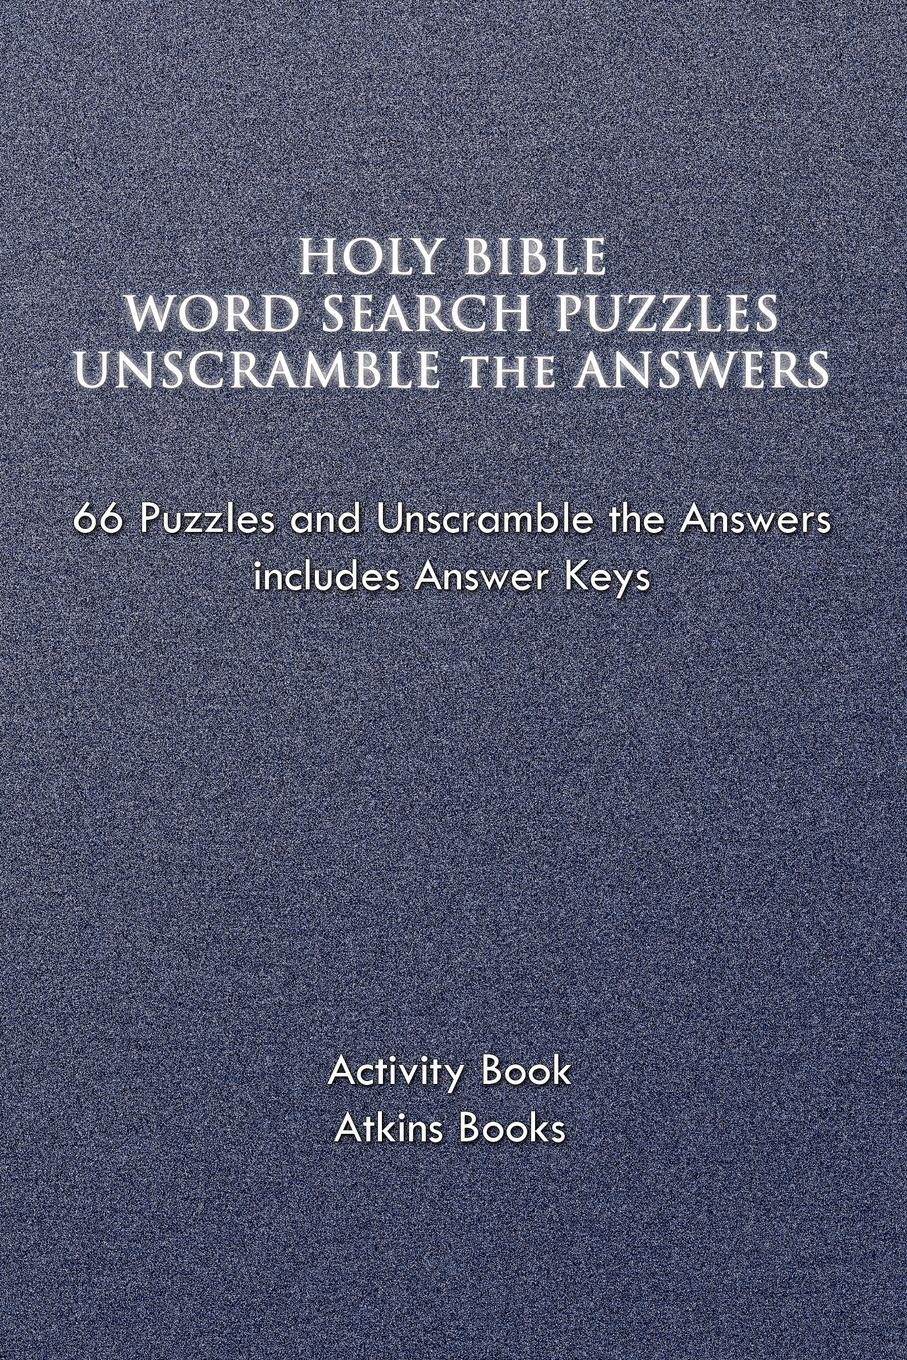 Atkins Books Holy Bible Word Search Puzzles Unscramble the Answers the holy bible